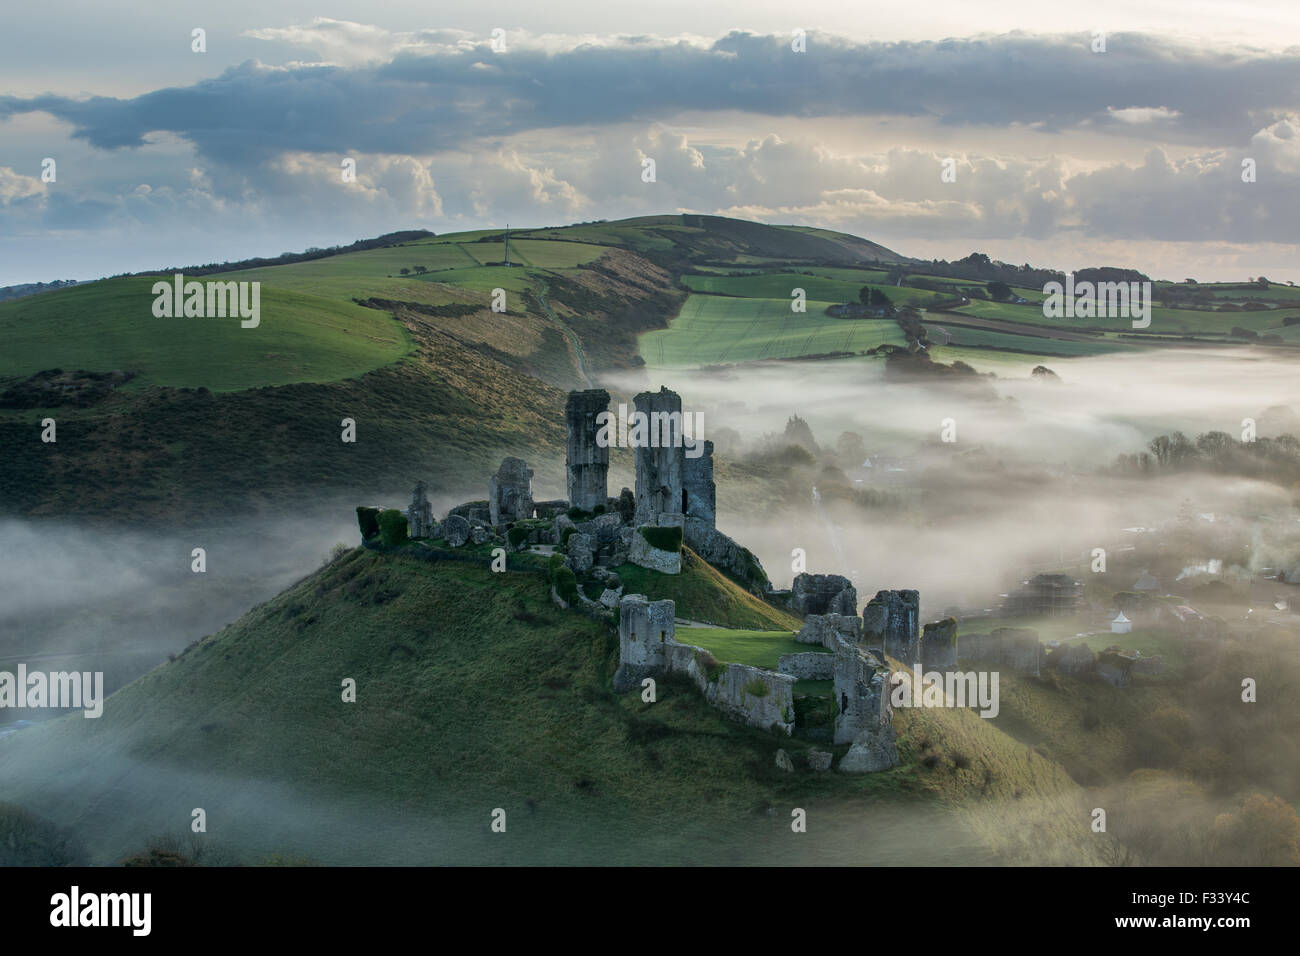 Corfe Castle in the mist, Corfe, Dorset - Stock Image